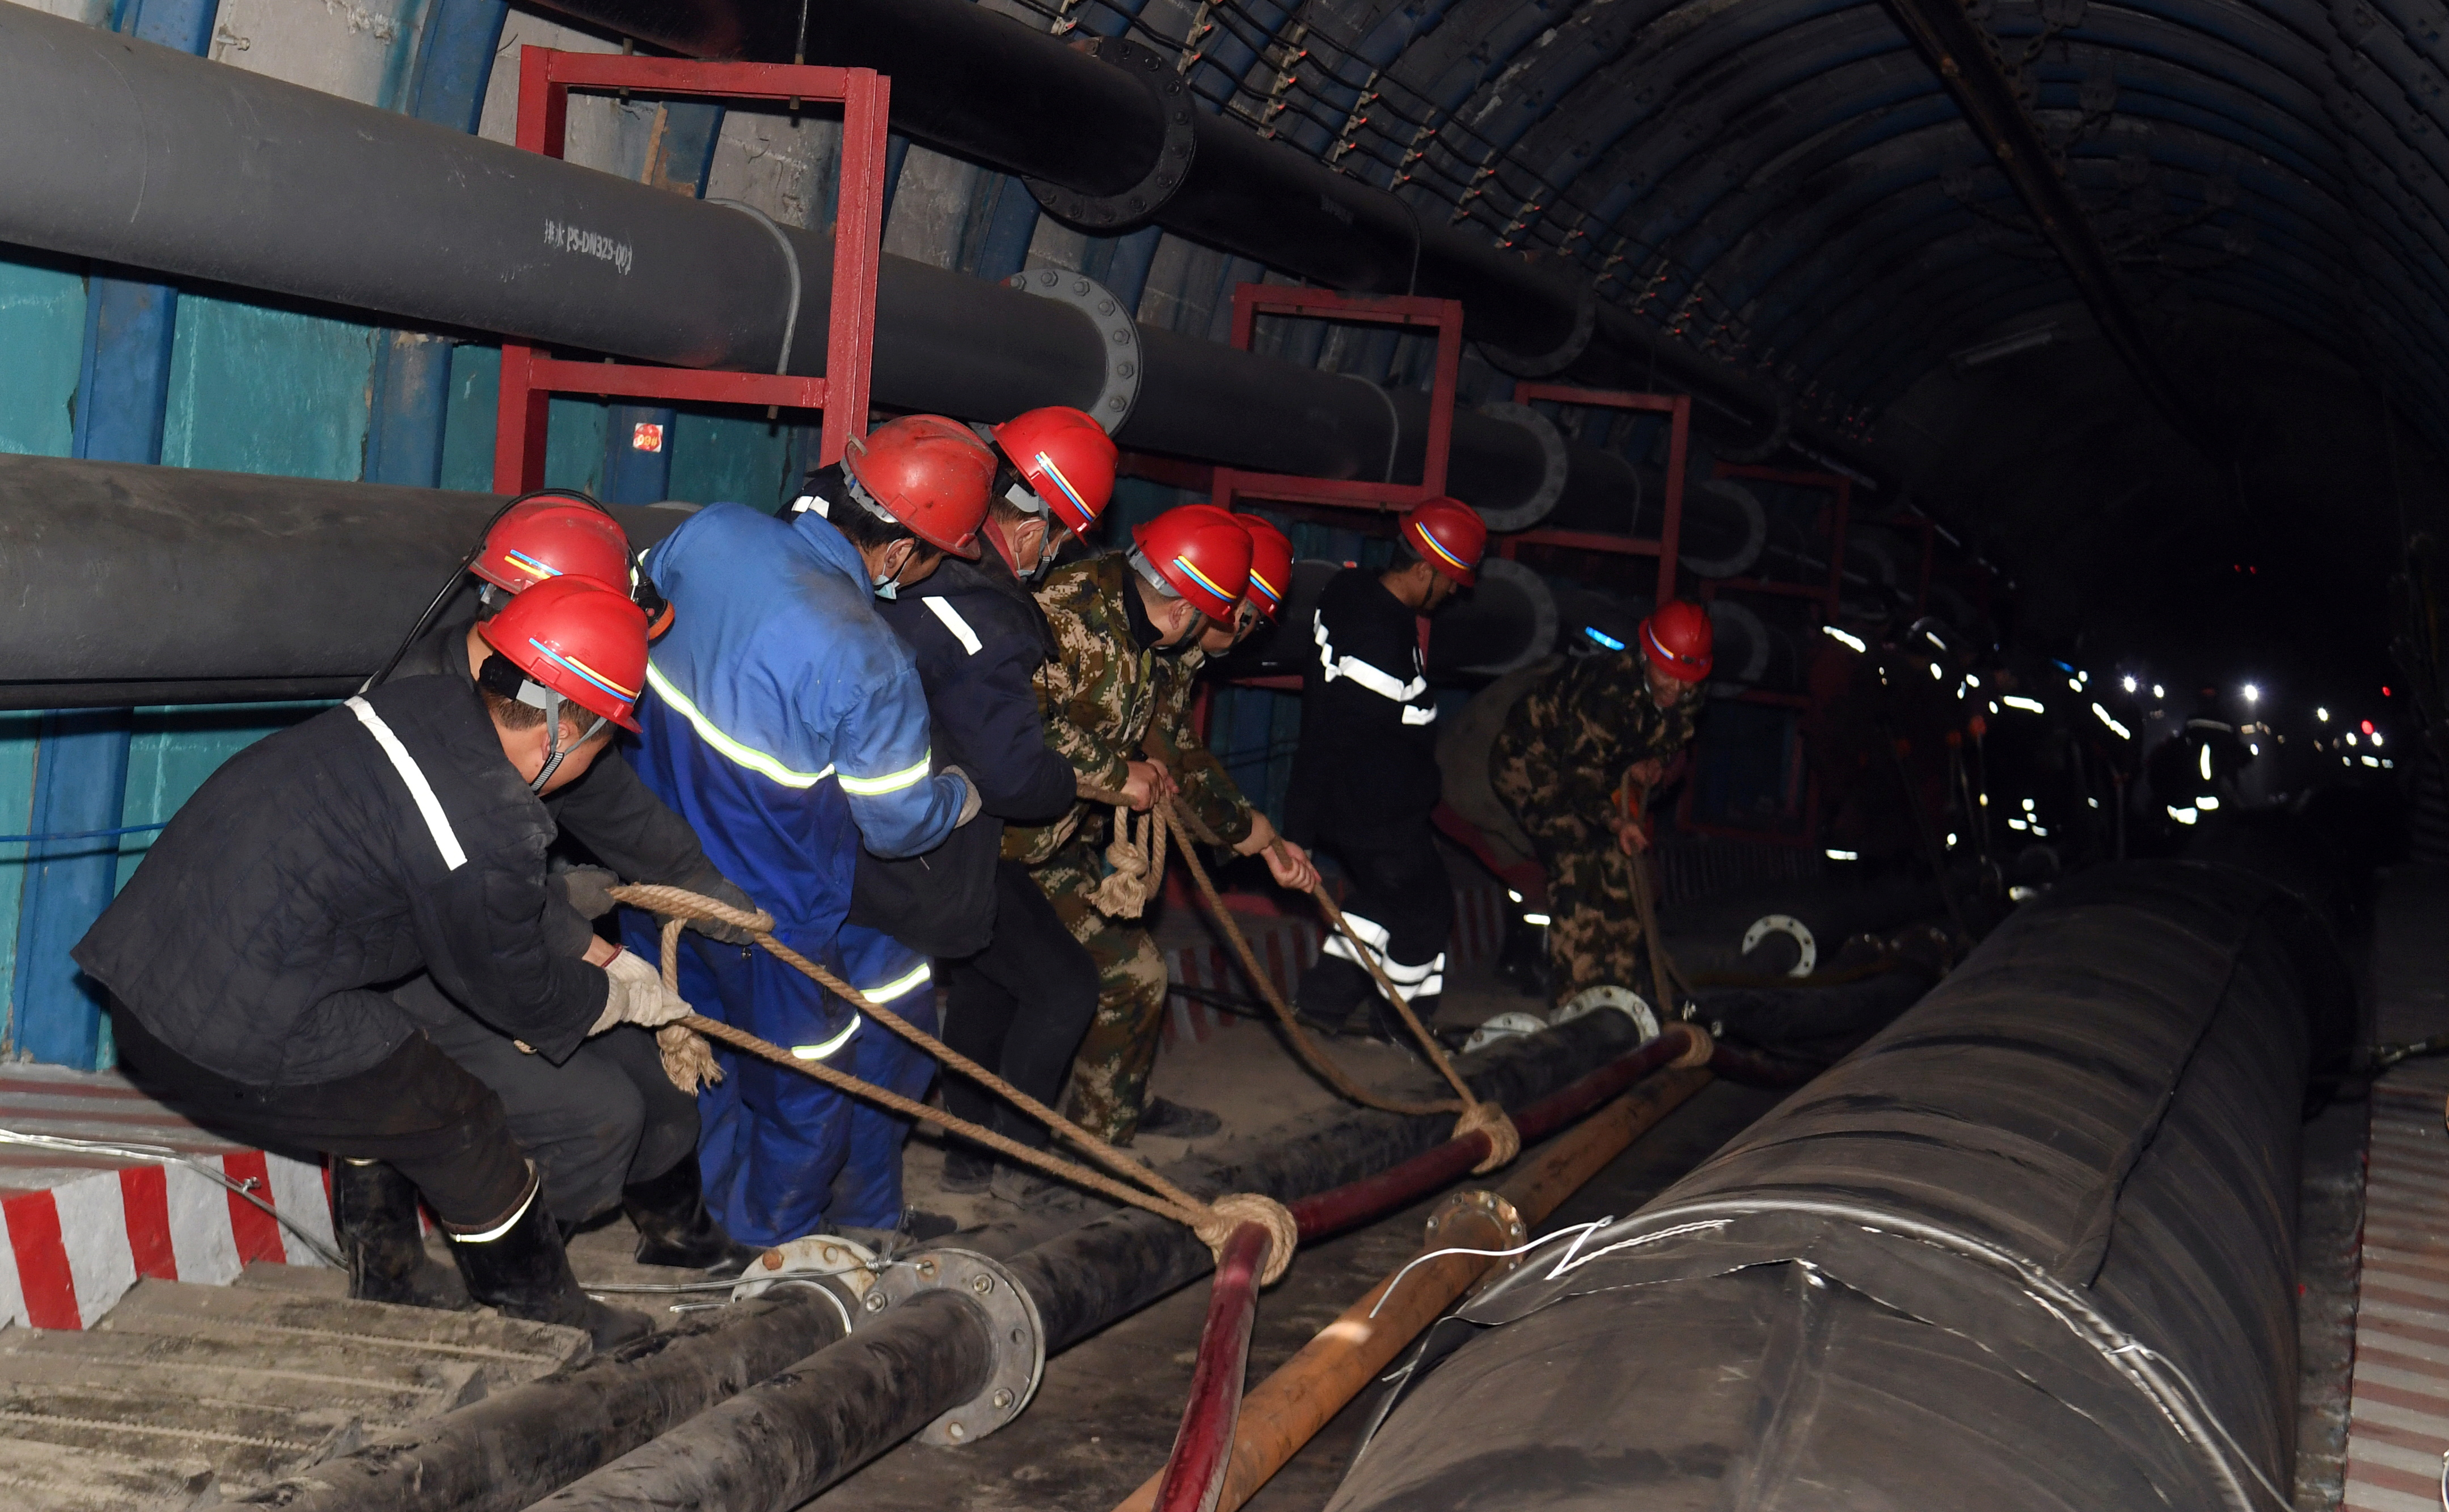 Rescuers work at the site where a coal mine flooded in Hutubi county, Xinjiang Uighur Autonomous Region, China April 11, 2021. China Daily via REUTERS